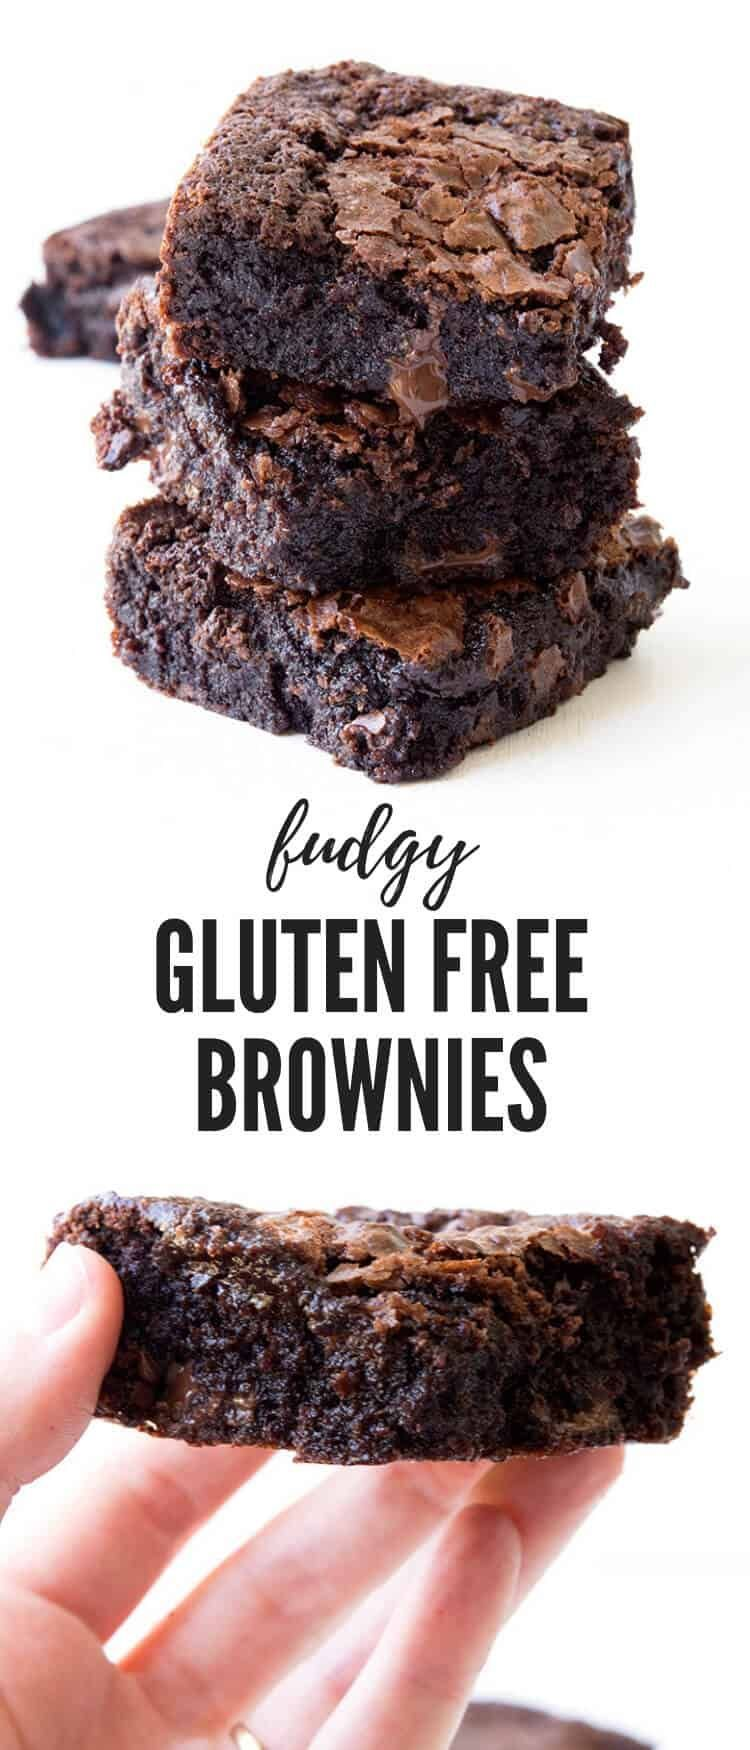 Hands down, the BEST gluten free chocolate brownies that are extra fudgy and gooey. Everyone will L